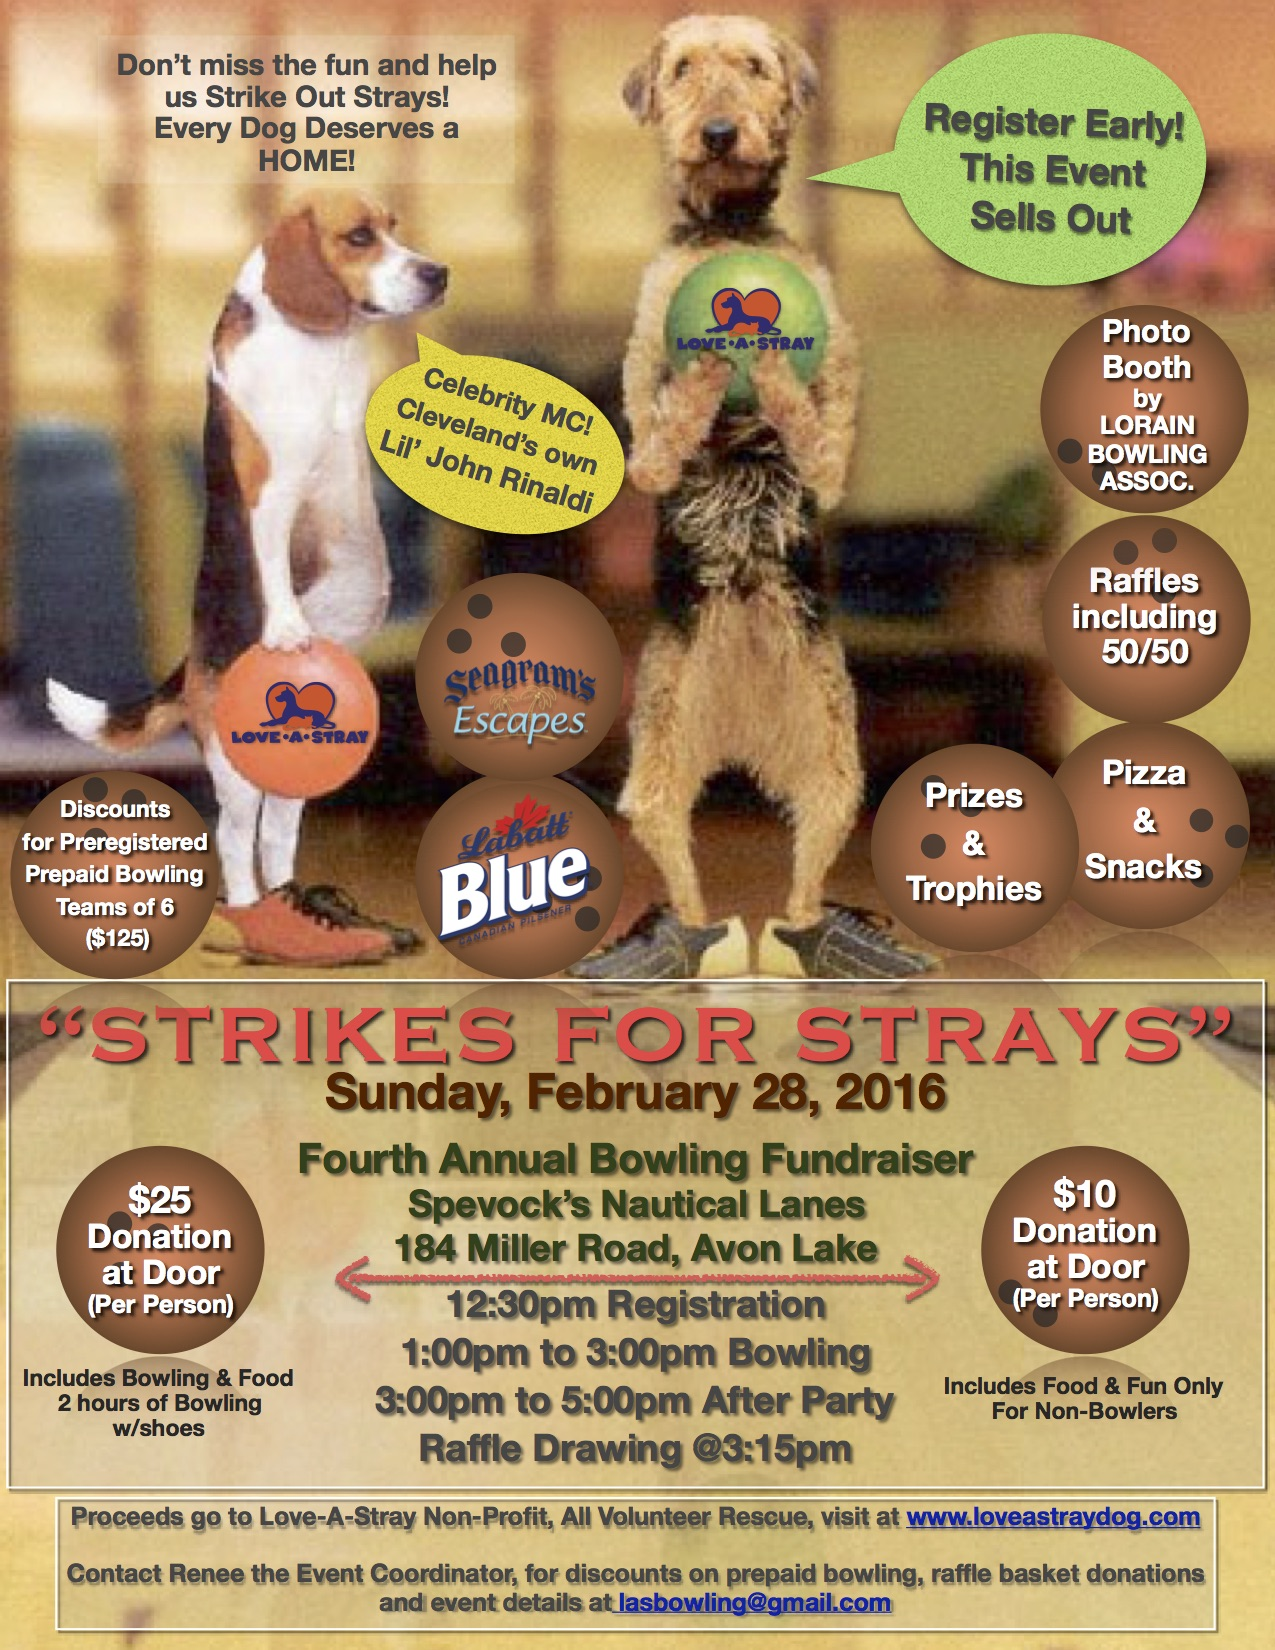 2016 Strikes for Strays Final